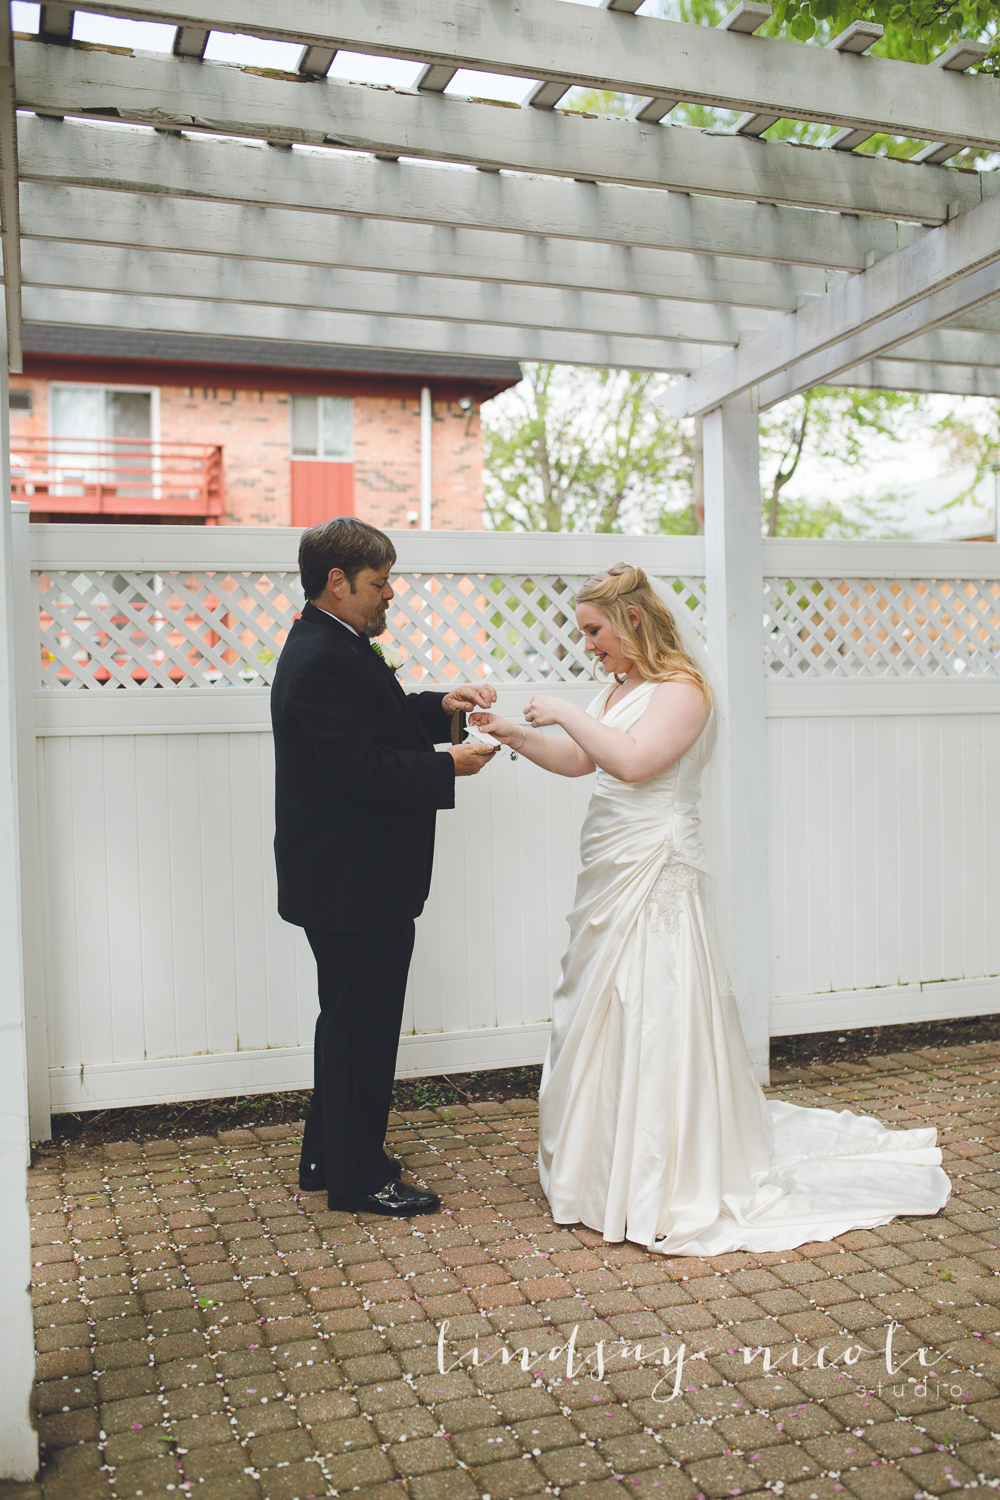 Bethanny's dad had his own surprise for Bethanny, a beautiful diamond necklace for her to wear down the aisle.